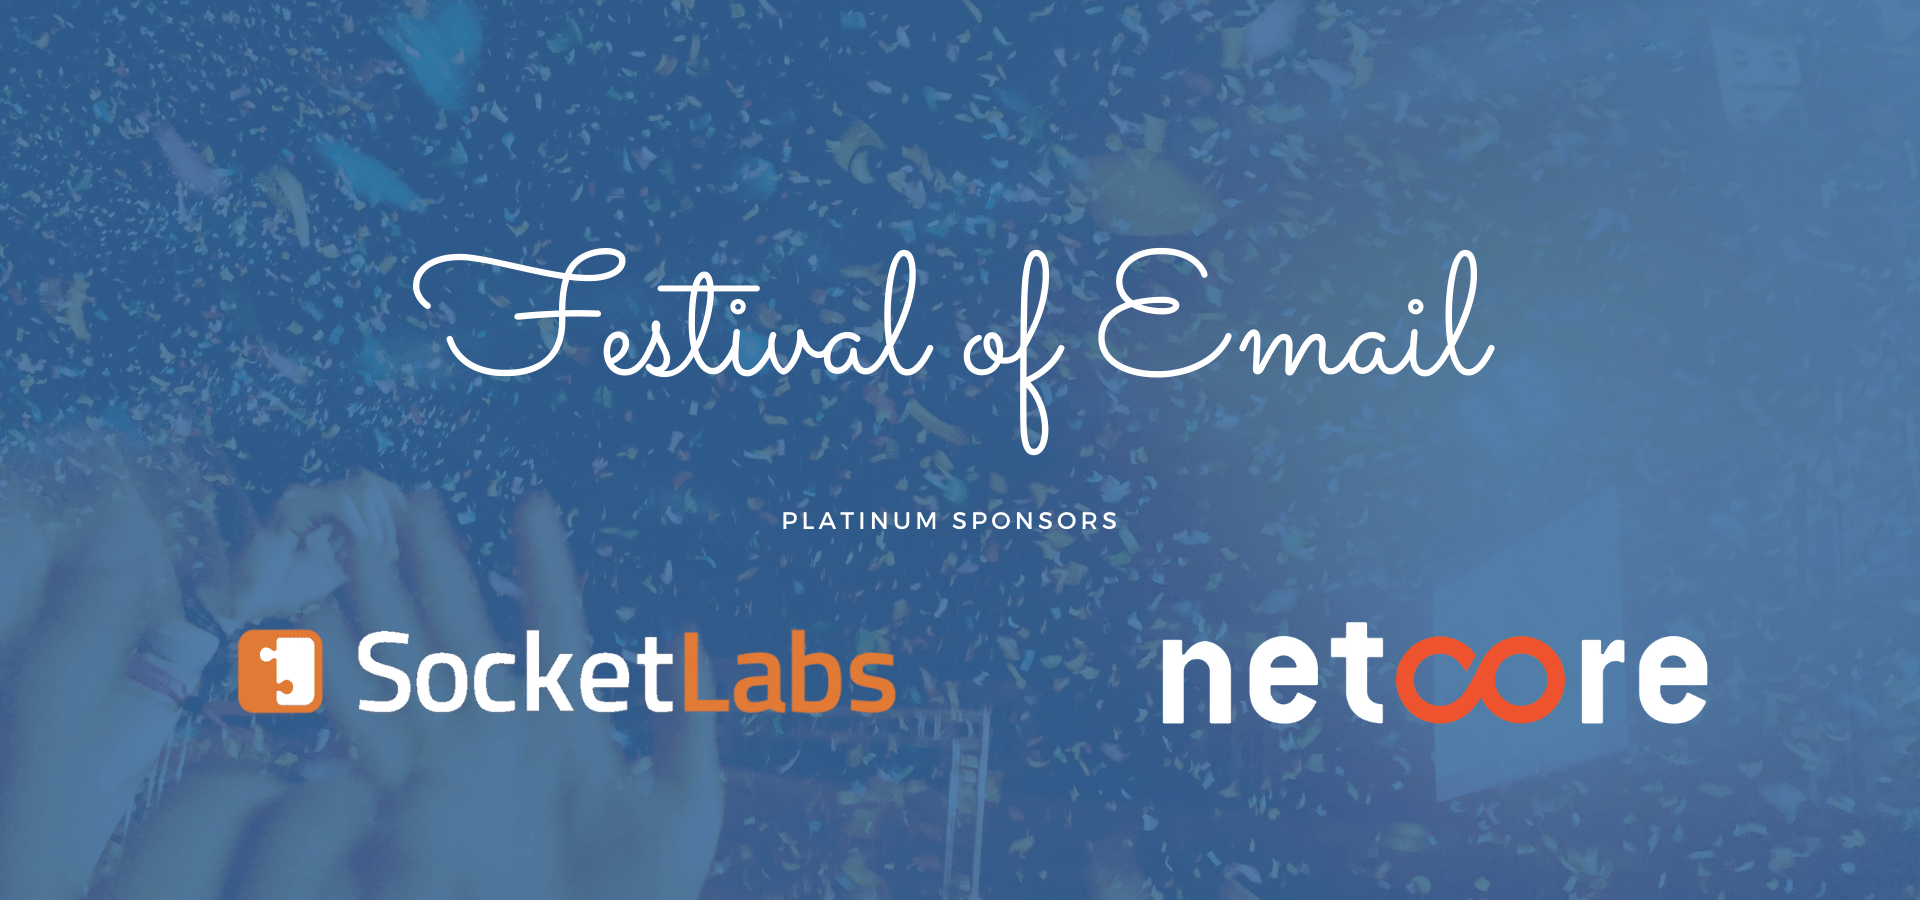 Festival of Email